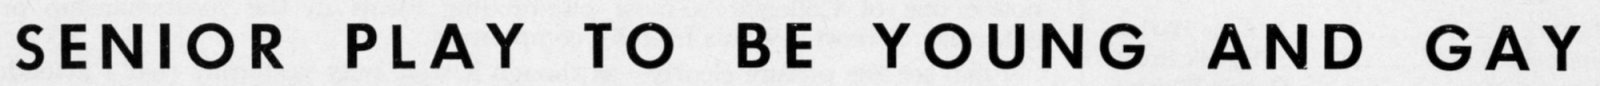 ""\""""Senior Play To Be Young And Gay"""" in The Match, February 1959""1600|86|?|en|2|9d2c0822b61b33db5b918efce3aec58e|False|UNLIKELY|0.29003265500068665